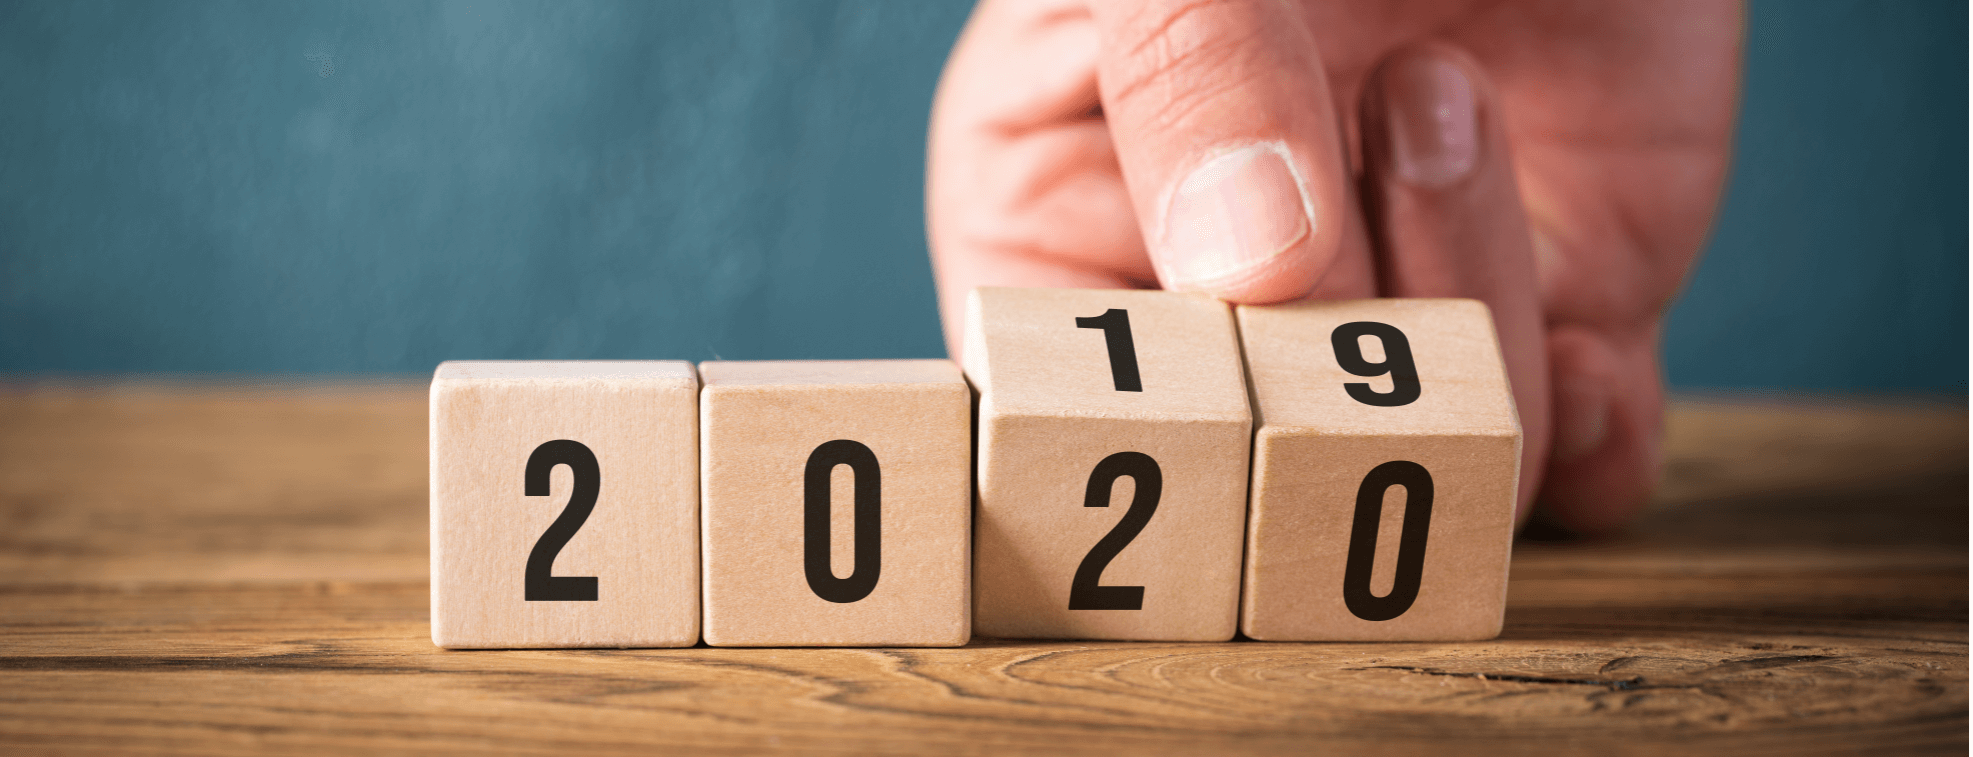 Person turning cubes with number from 2019 into 2020